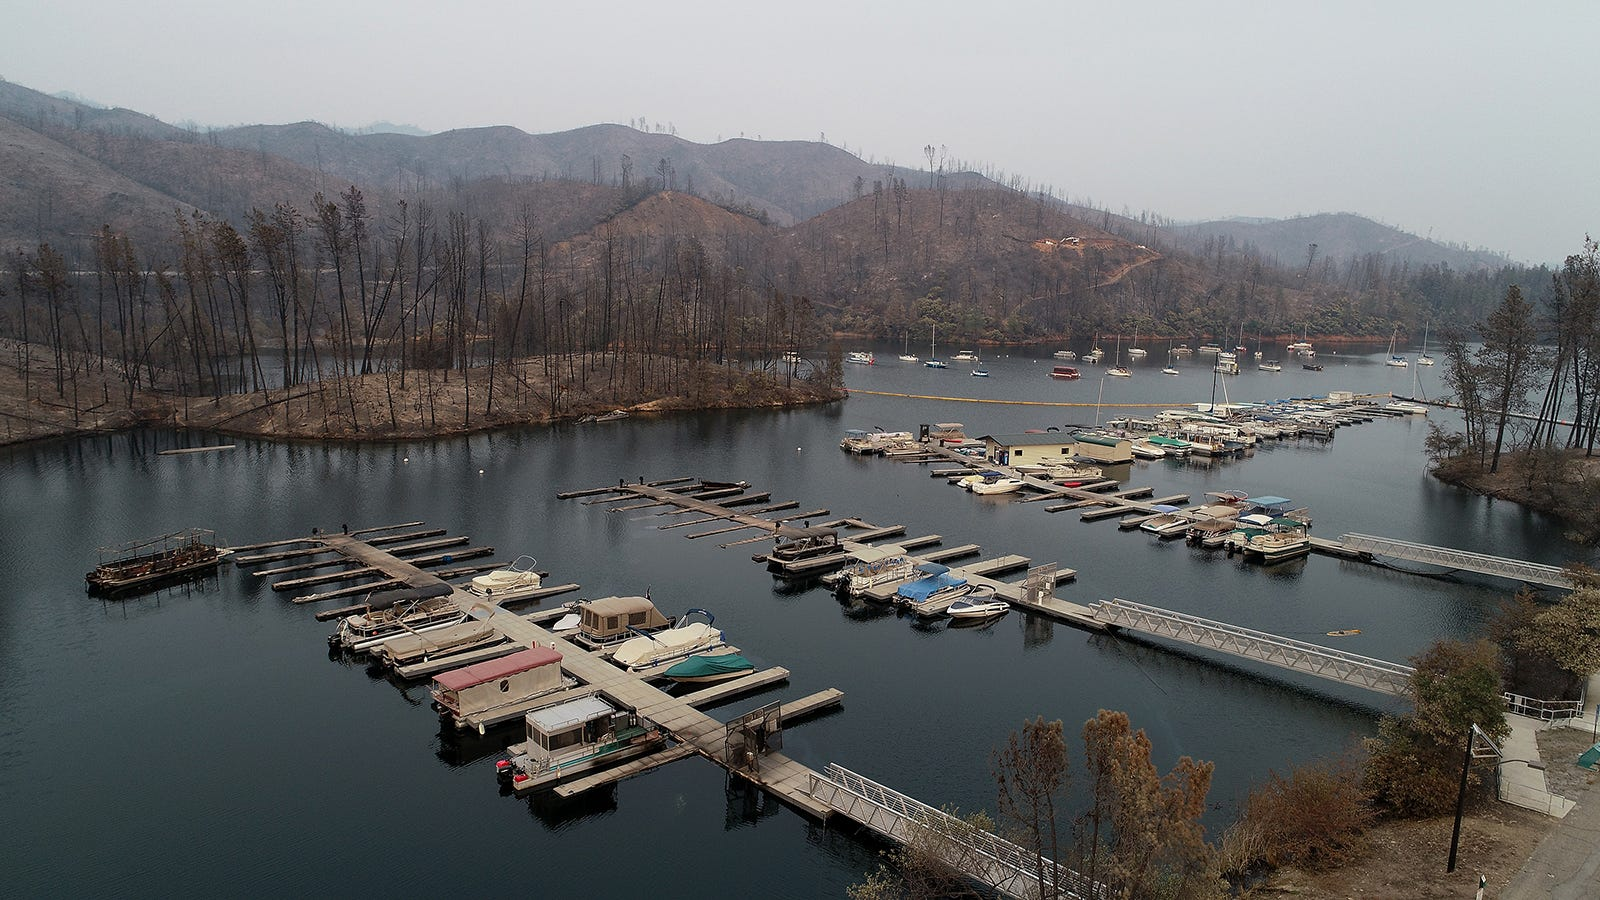 Damage from the Carr Fire is seen at Oak Bottom Marina Wednesday August 1, 2018. Several boats were affected by the fire when it rolled through the area late last week.